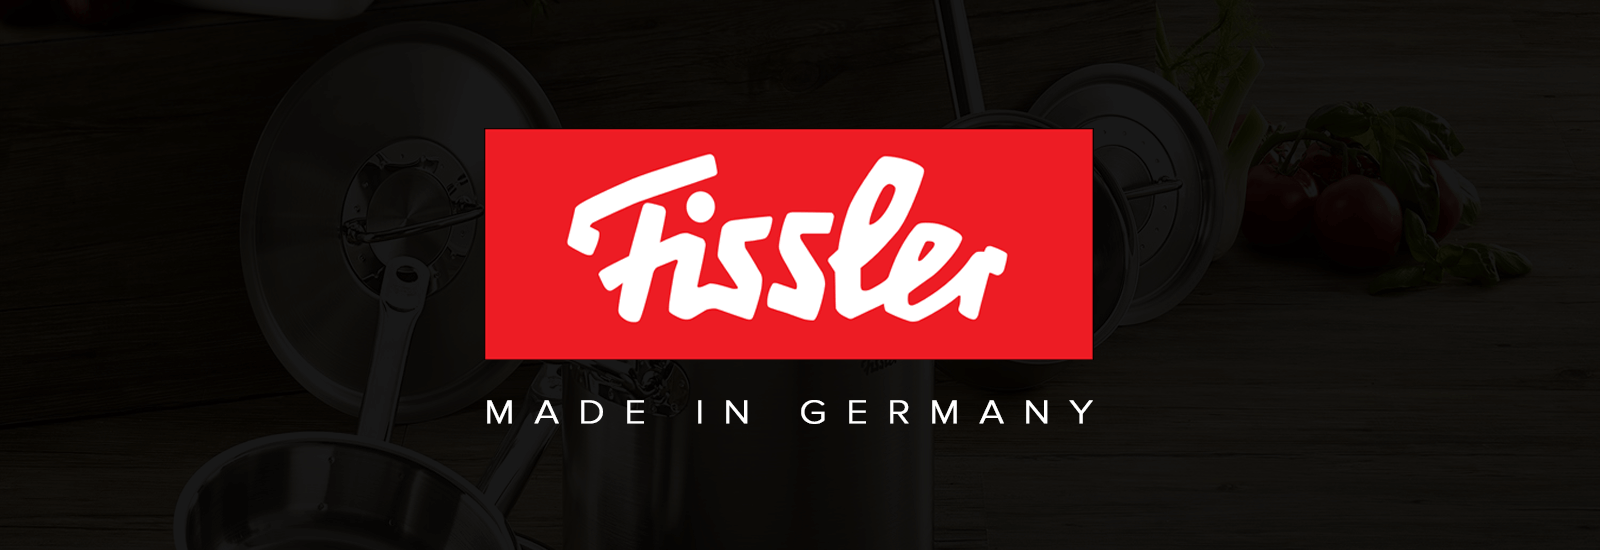 fissler Made in Germany